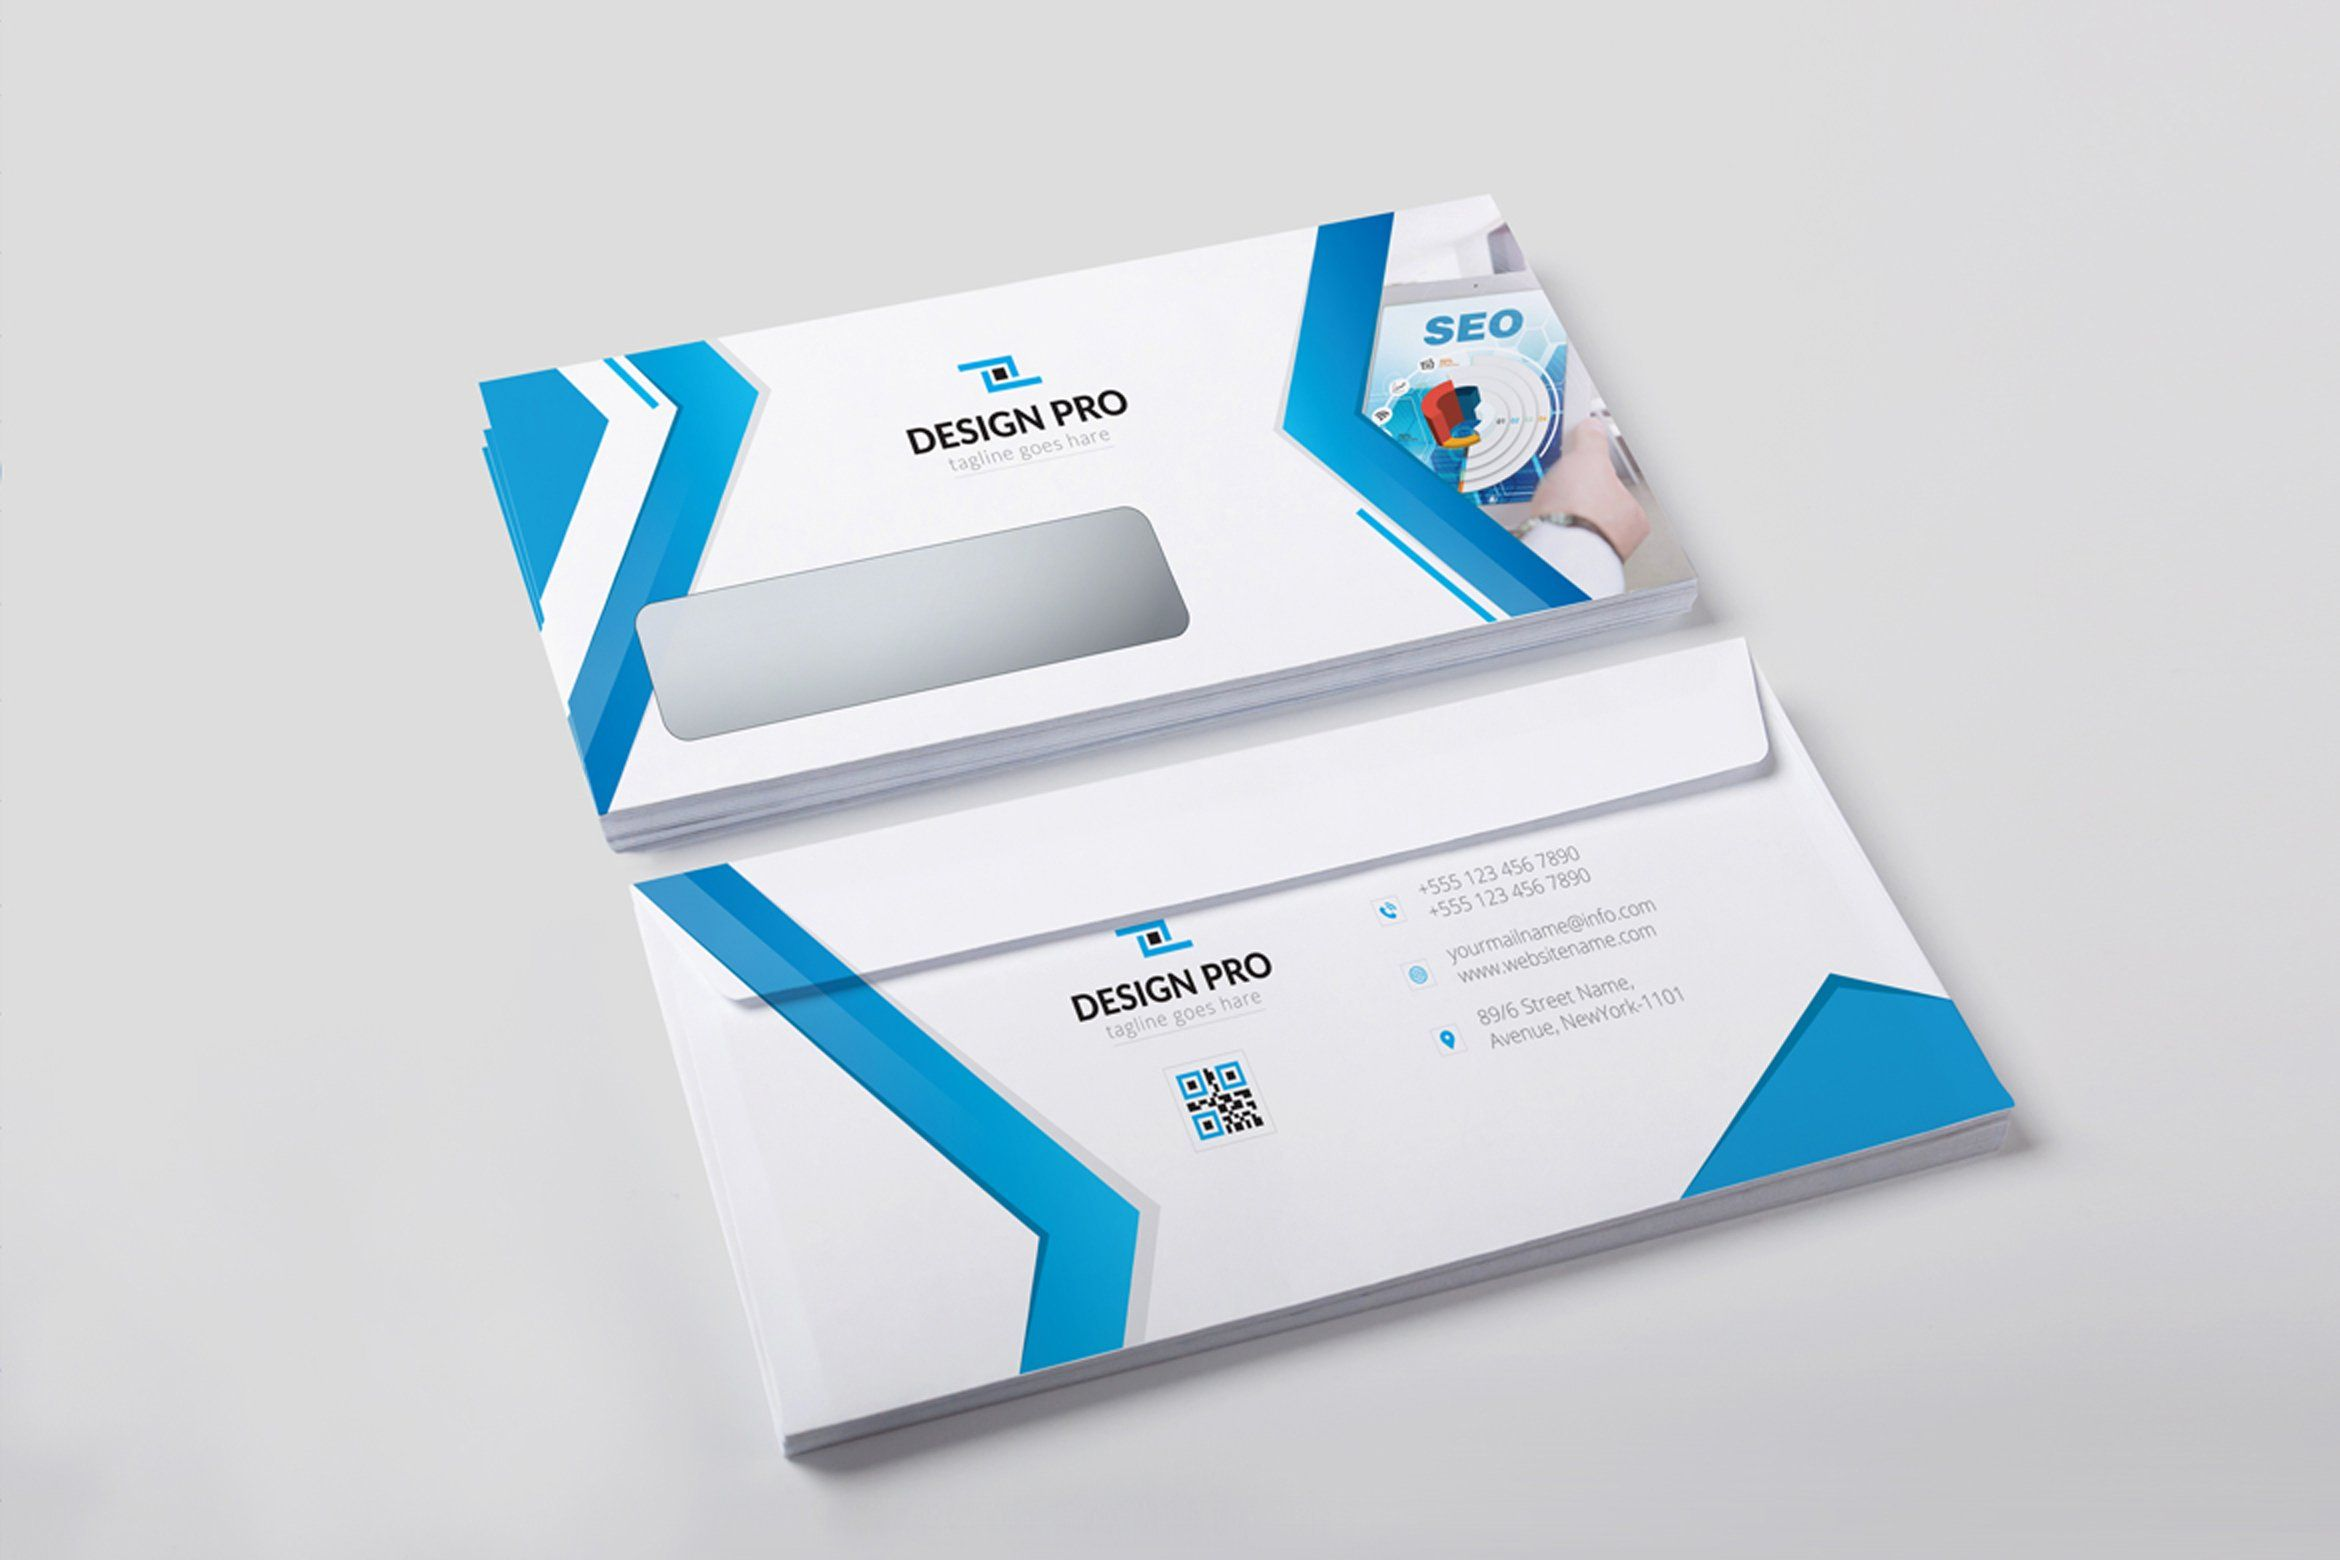 envelope stationery templates, text tool, business card logo resume example for teenager with no work experience dental receptionist objective bartender